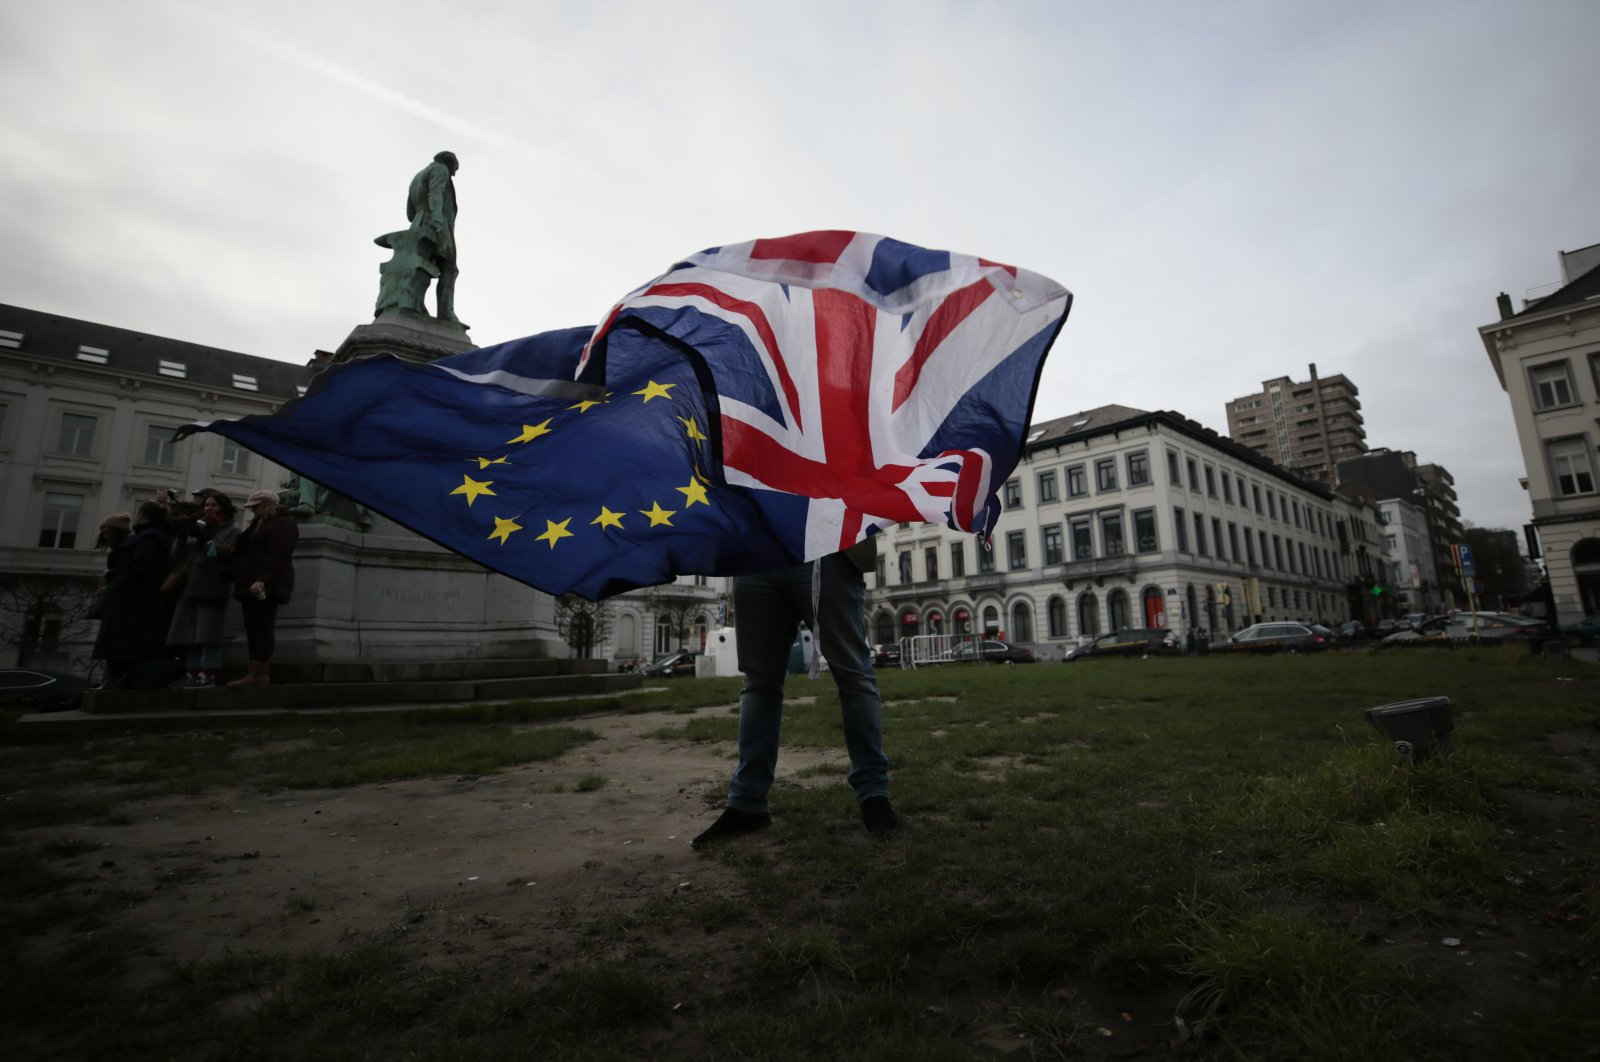 A pro-EU supporter unfurls a Union and EU flag prior to a ceremony to celebrate British and EU friendship outside the European Parliament, Brussels, Jan. 20, 2020. (AP Photo)